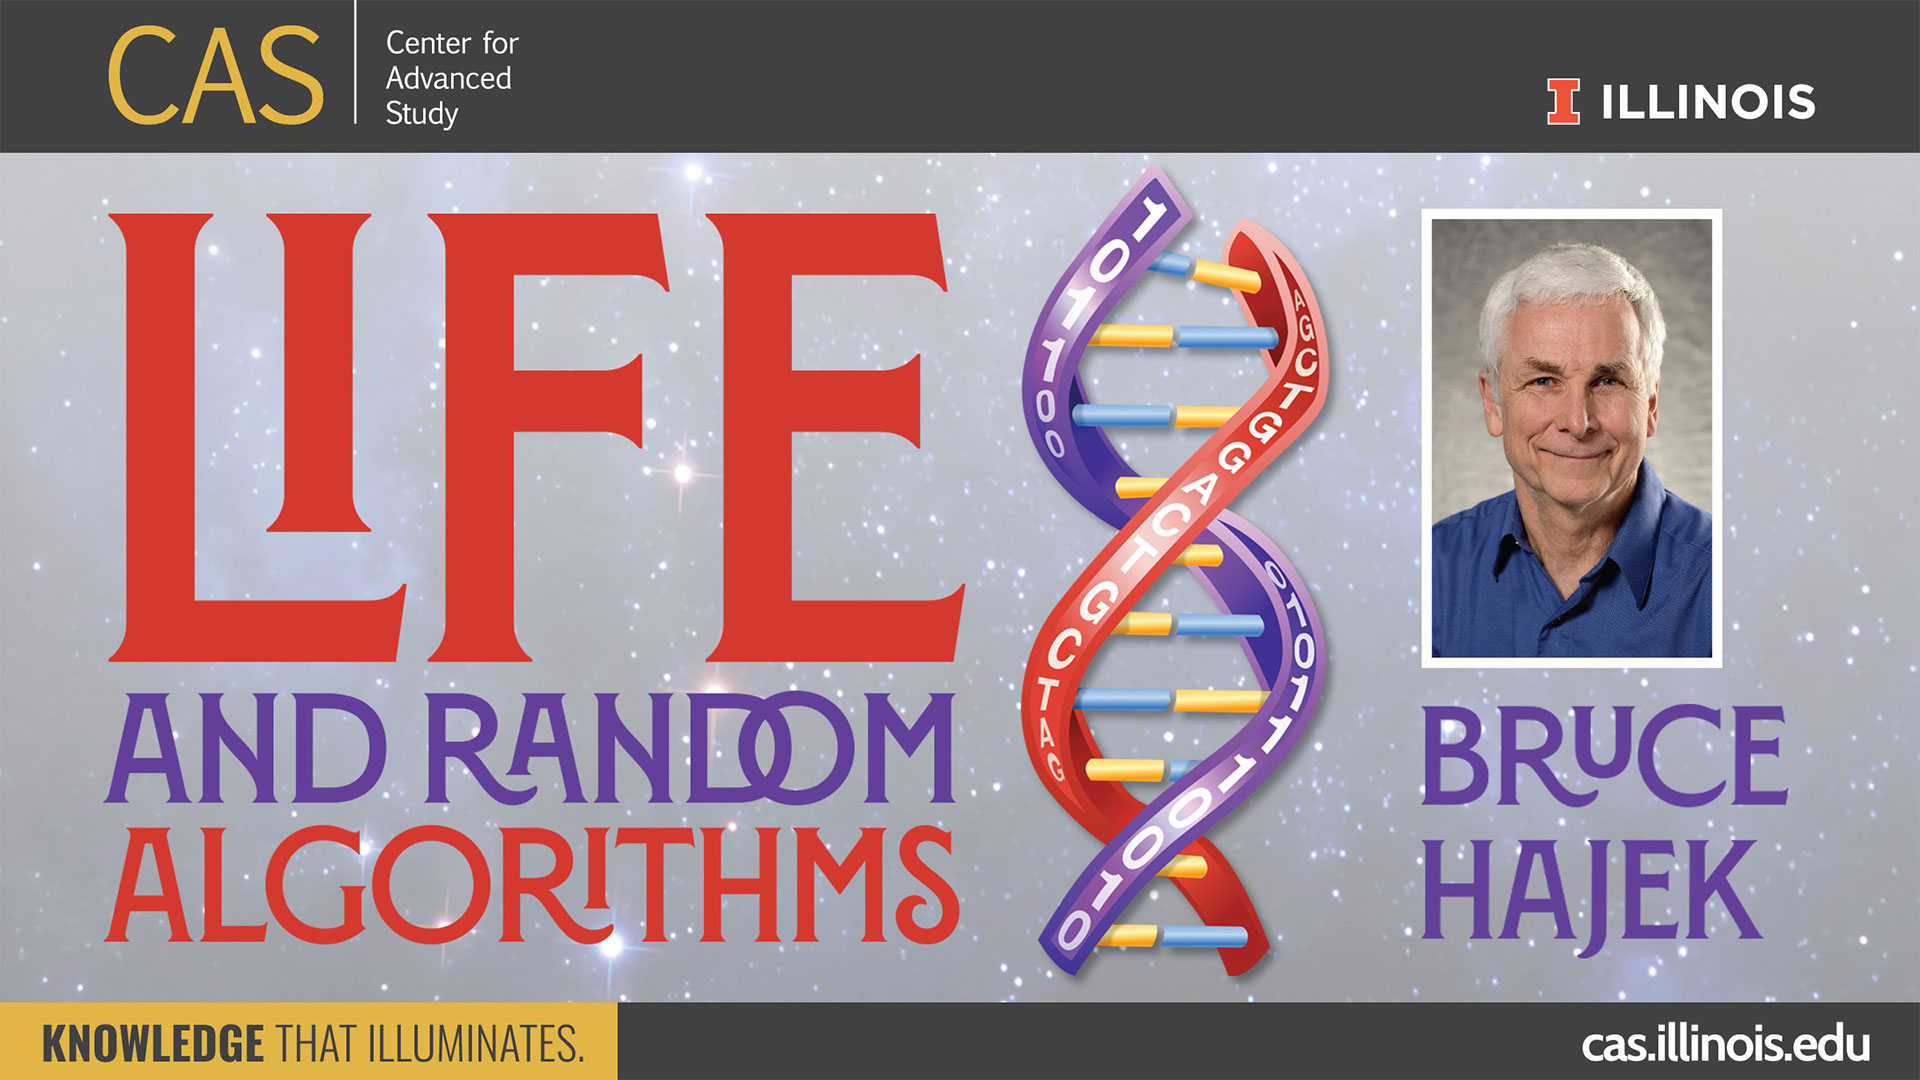 Life and Random Algorithms with DNA illustration and portrait of Bruce Hajek